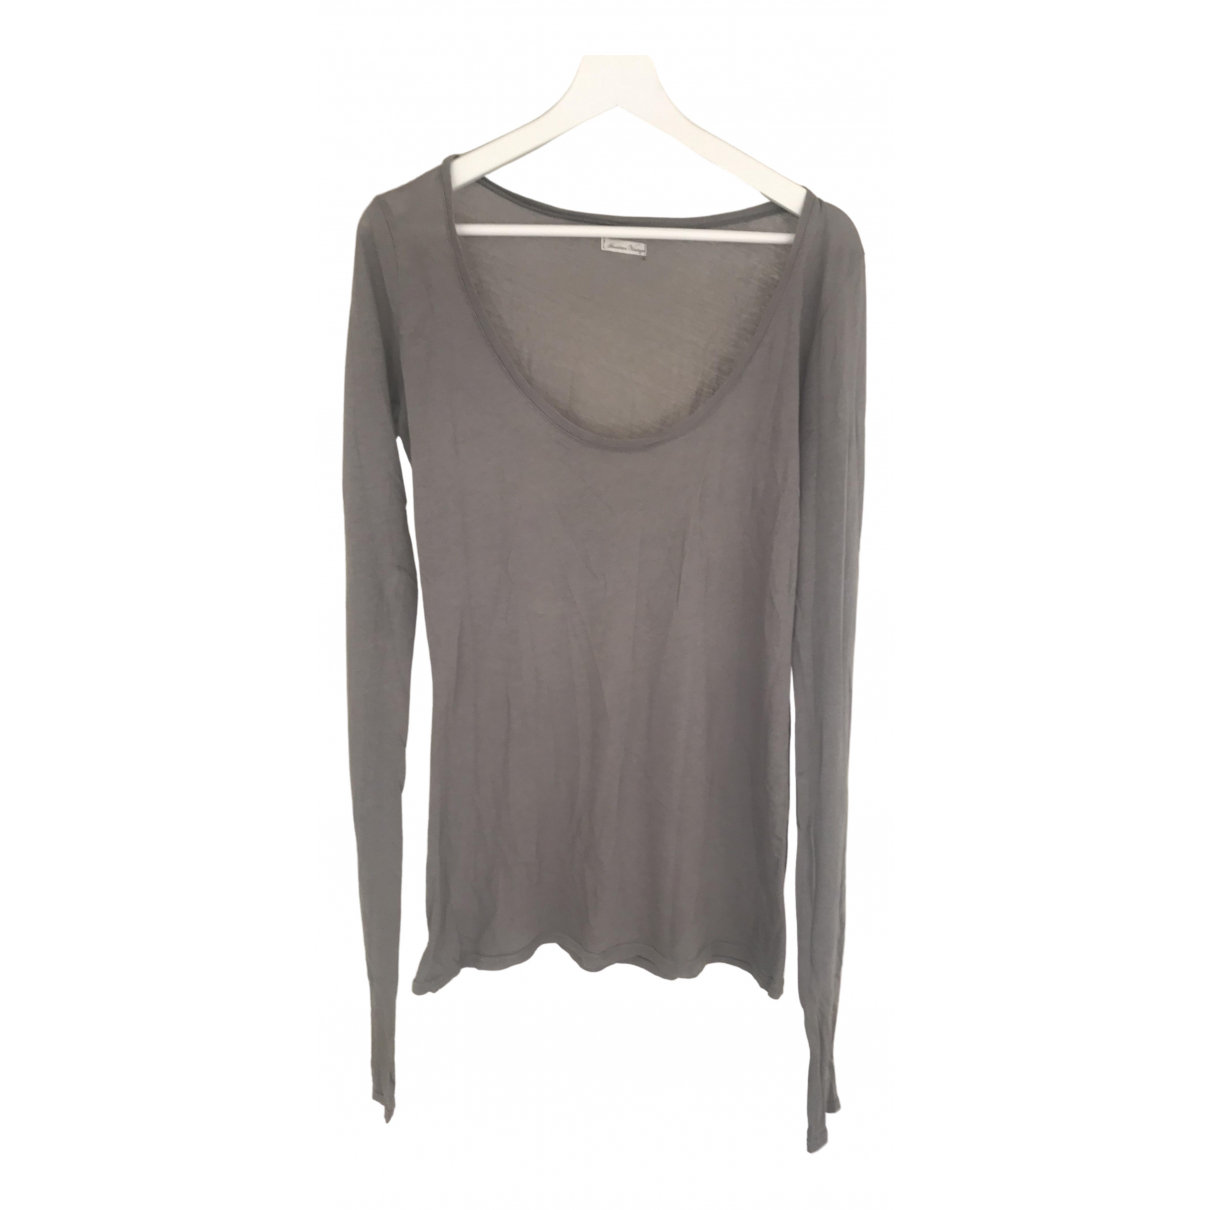 American Vintage \N Grey Cotton  top for Women One Size FR